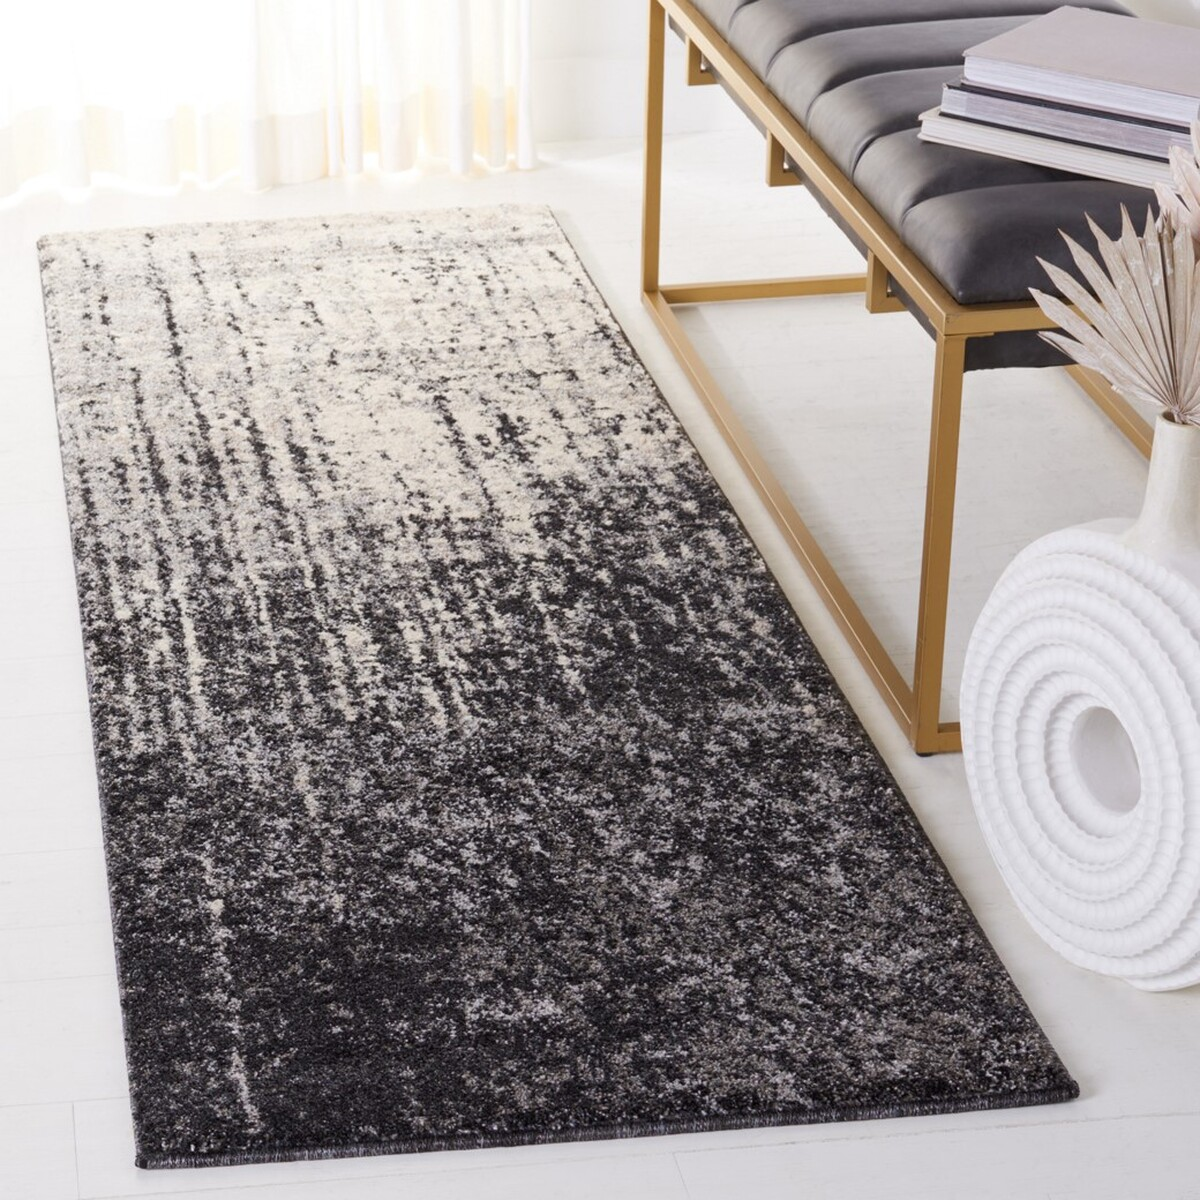 Retro Rugs Grey Amp Black 60 S Styled Area Rug Safavieh